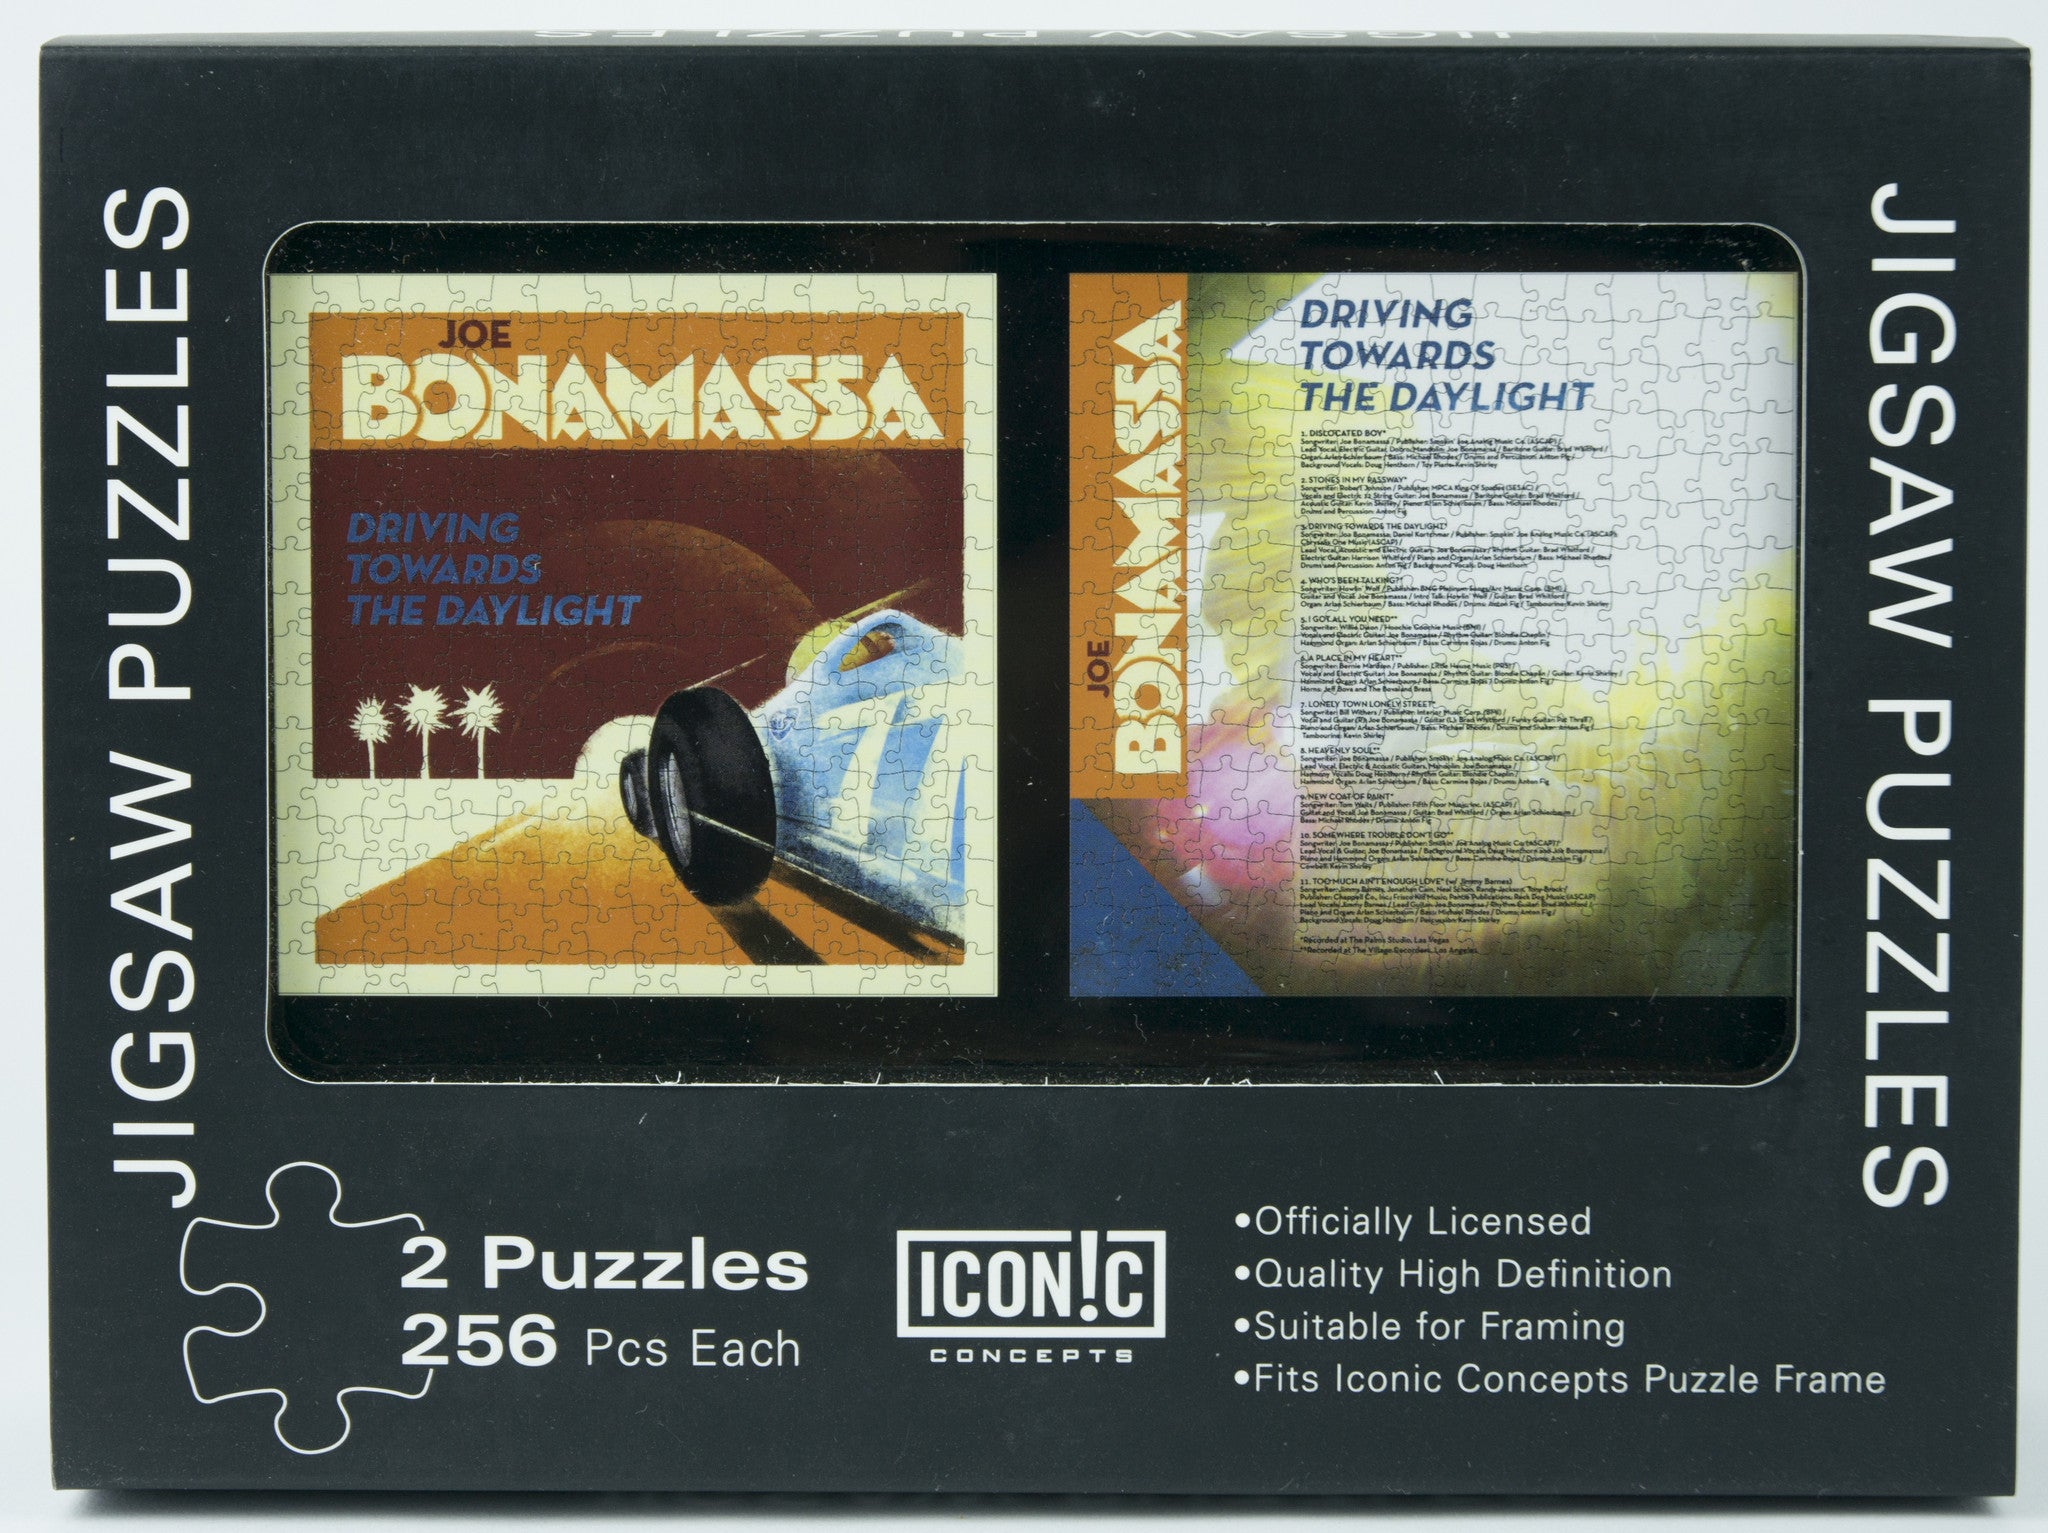 Joe Bonamassa Dual Pack Puzzle - Driving Towards The Daylight